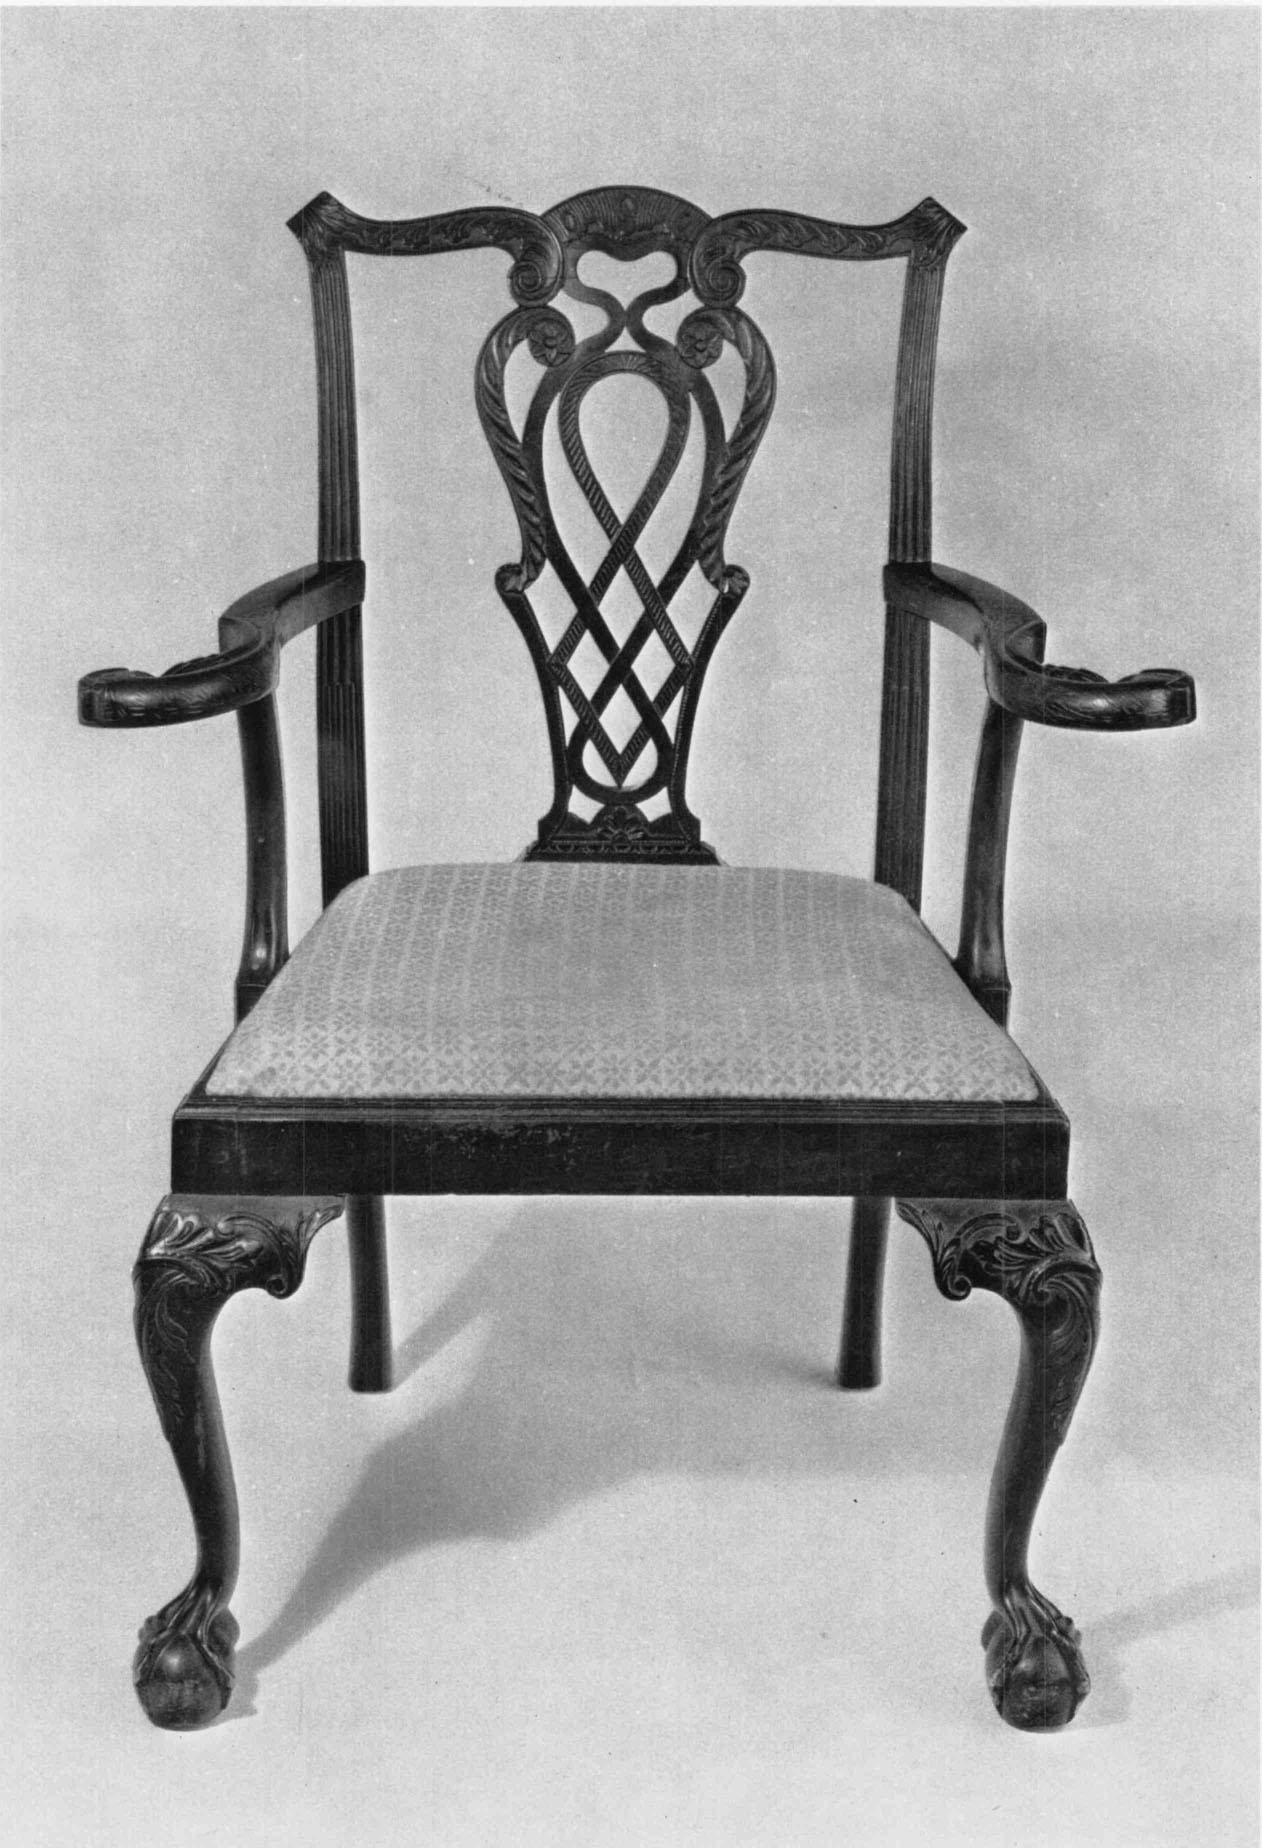 This israel sack american federal mahogany antique lolling arm chair - Mahogany And Maple H 37 Inches W 29 Inches D 19 Inches Israel Sack Inc New York City According To Family Tradition This Chair Was Owned By